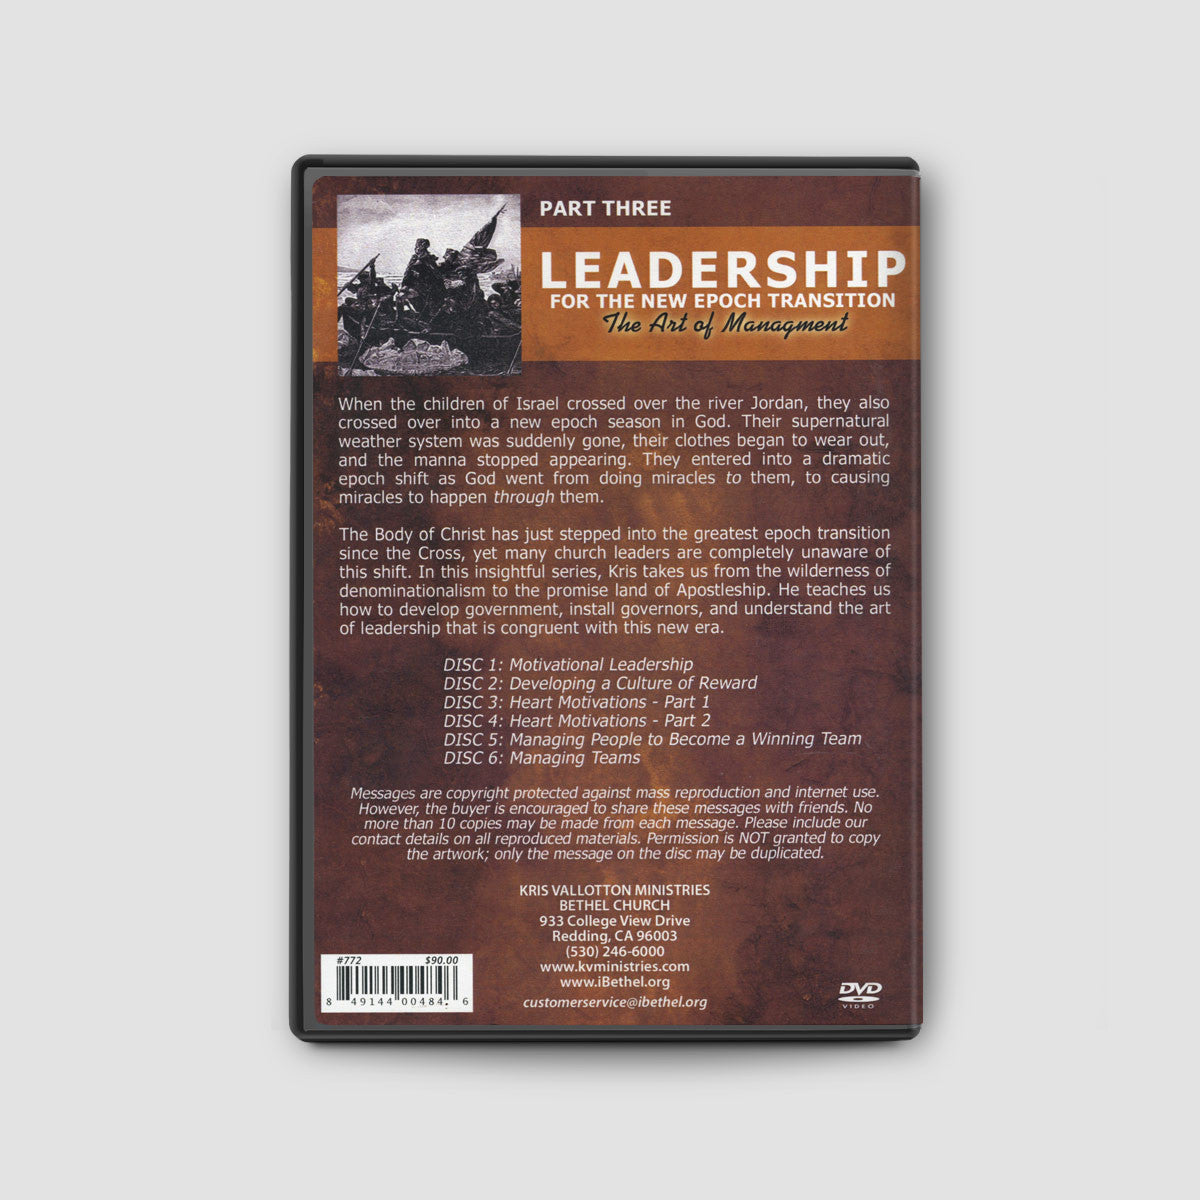 Leadership for the New Epoch Transition Part 3